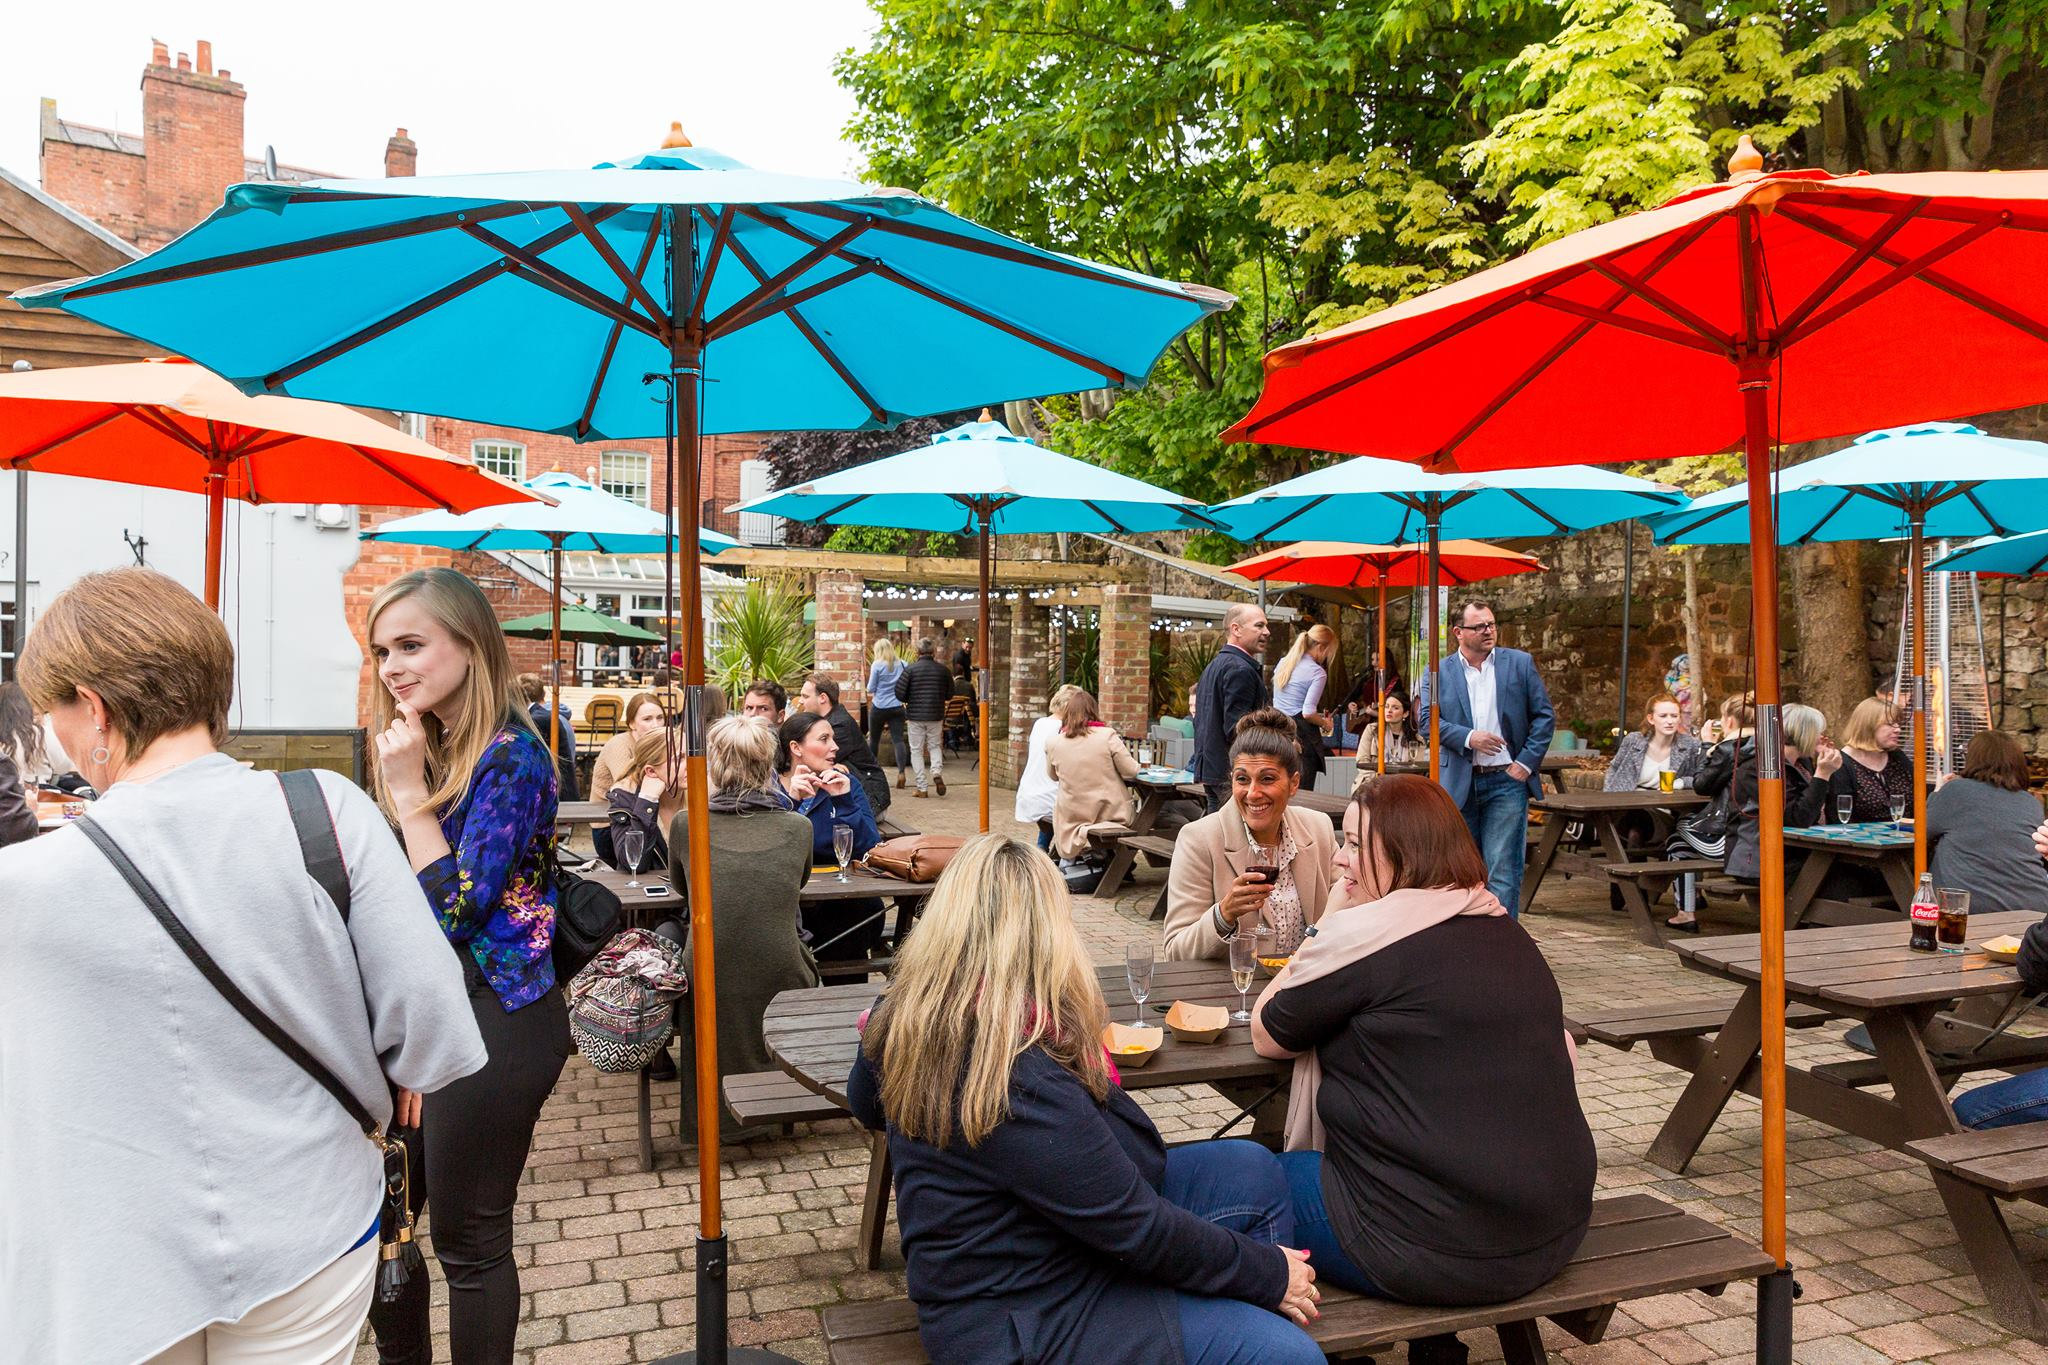 City Gate pub garden in summer Exeter Restaurants